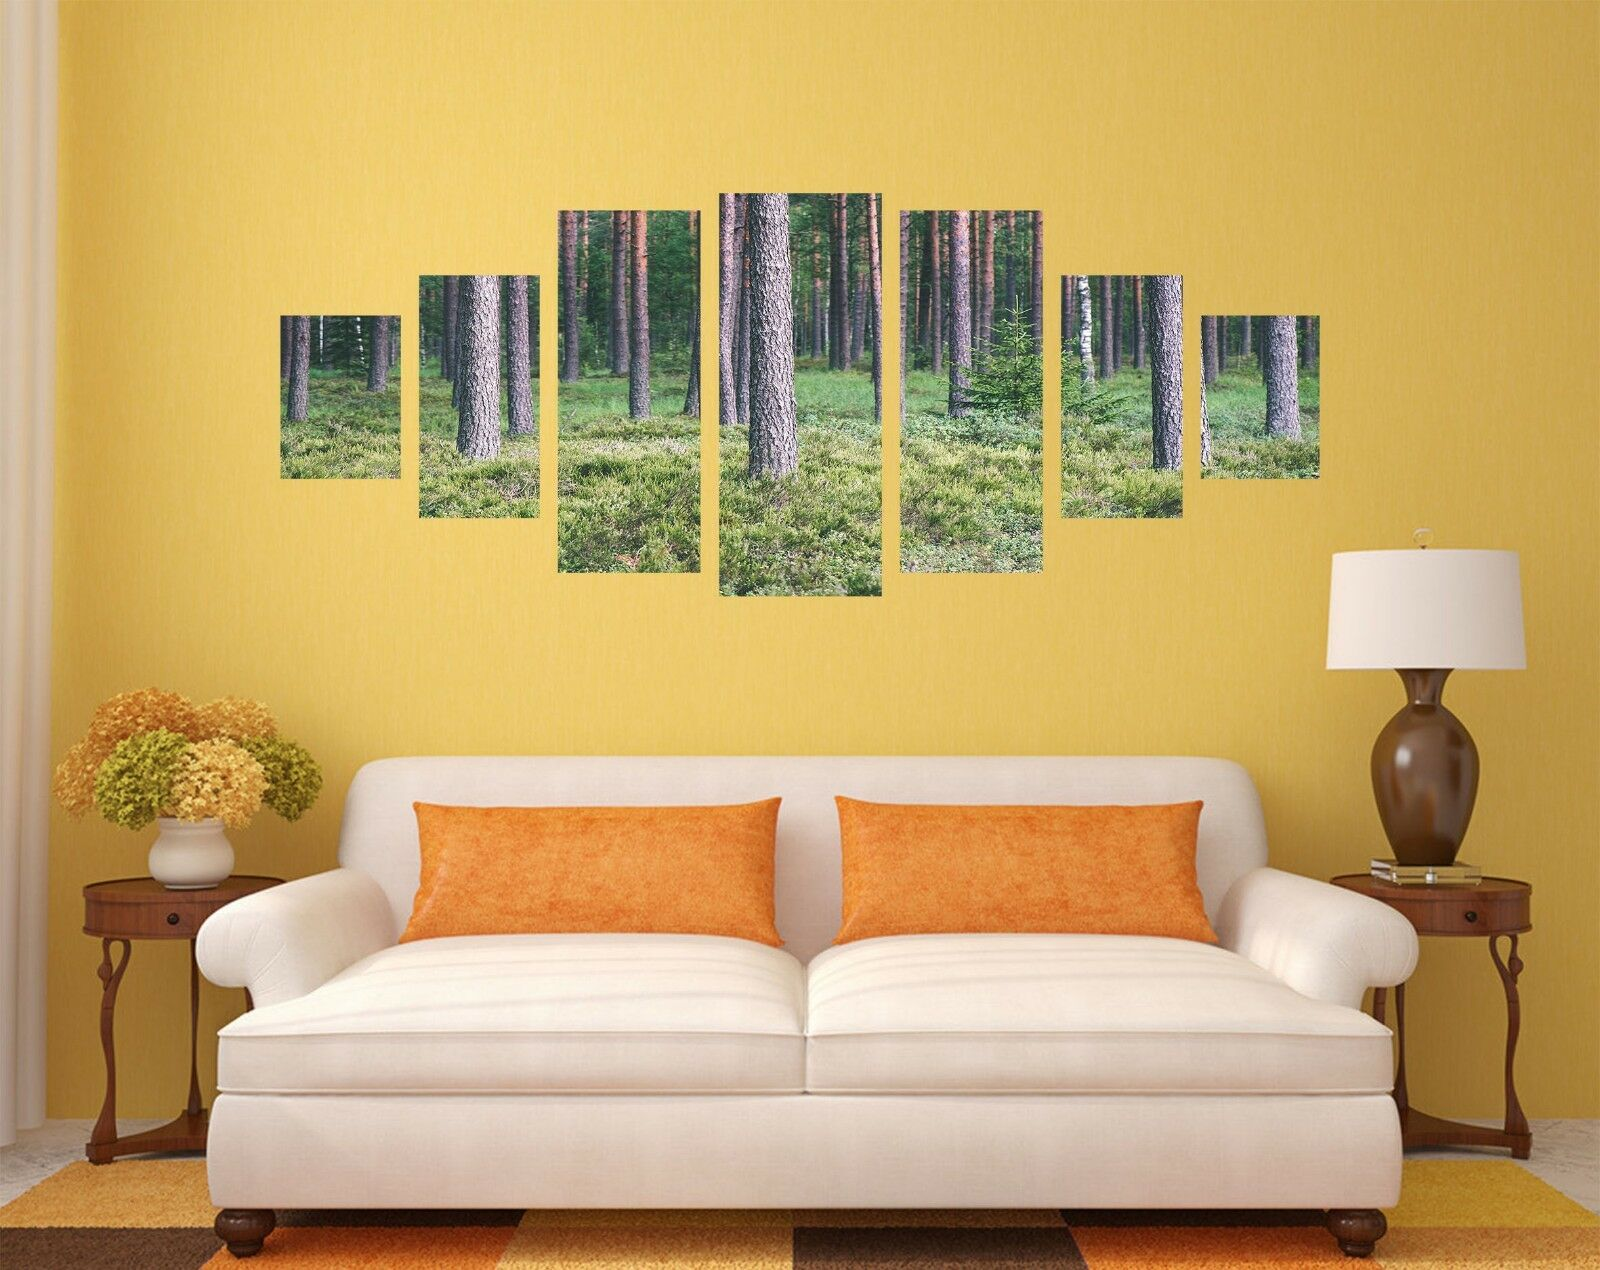 3D Forest Aisle 577 Unframed Print Wall Paper Decal Wall Deco Indoor AJ Wall